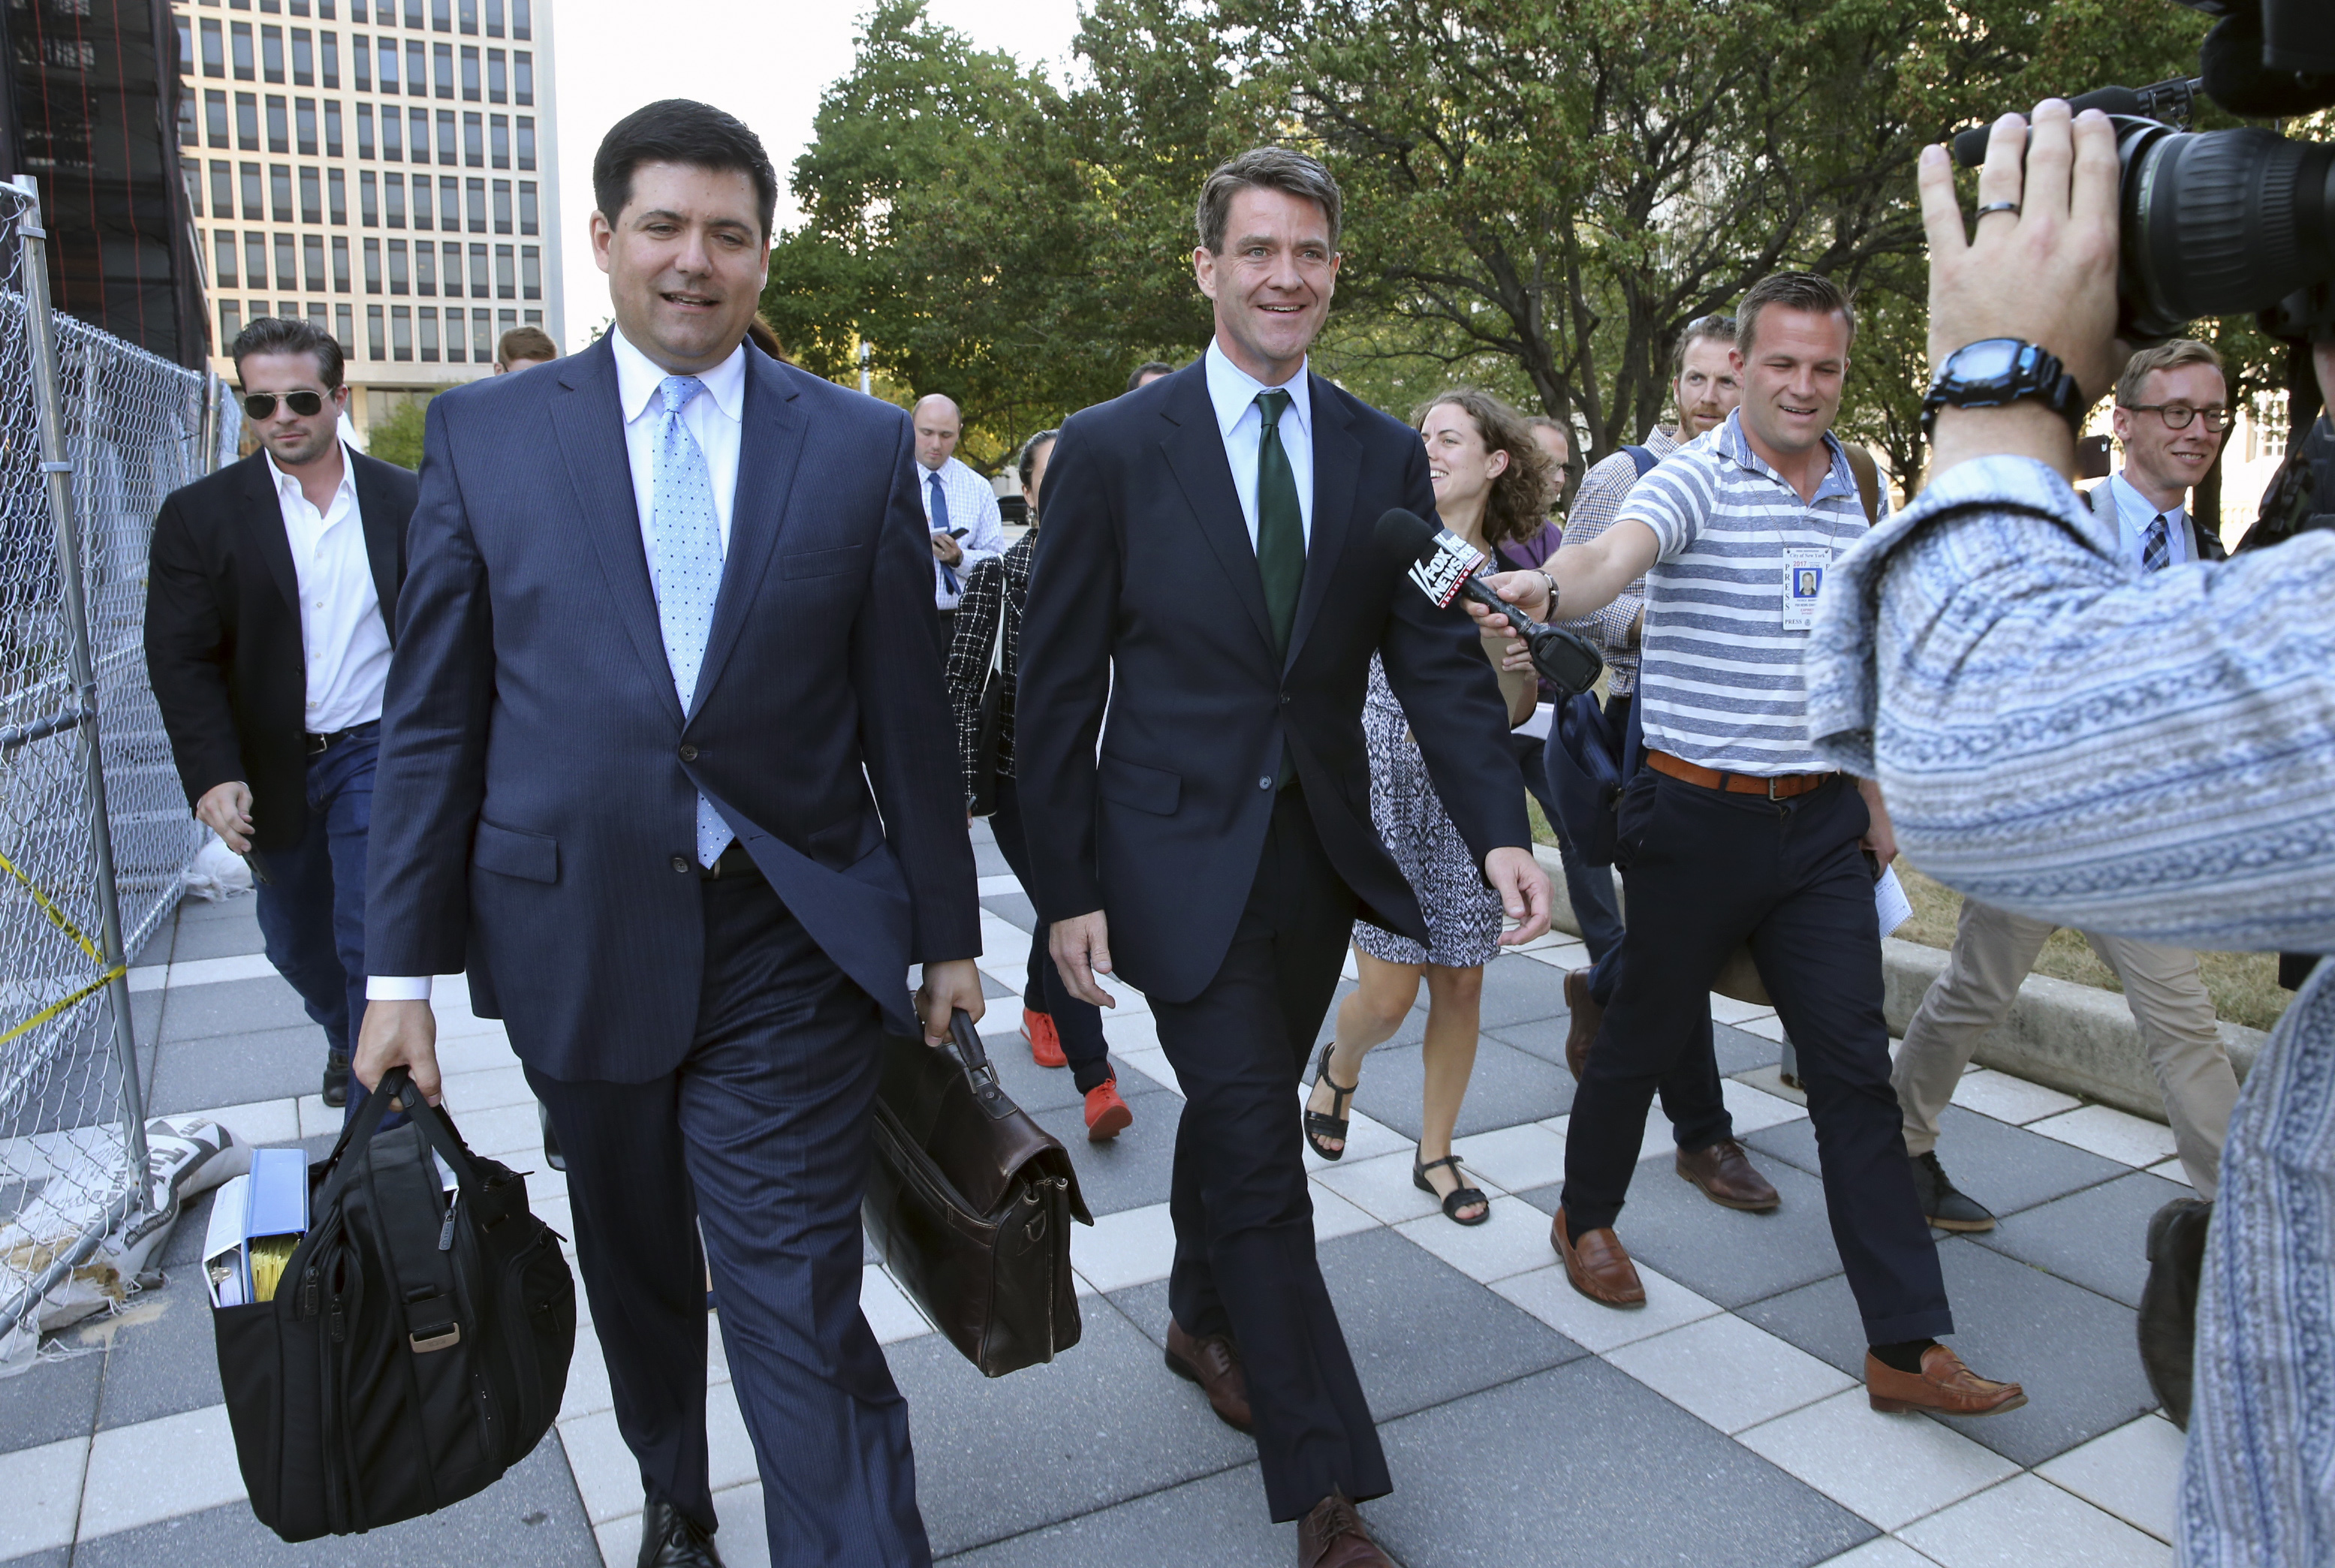 Bill Baroni (C) New Jersey Gov. Chris Christie's former top appointee at the Port Authority of New York and New Jersey, and his attorney Michael Baldassare, (center L) leave Federal Court after a hearing for jury selection in Newark, N.J., on Sept. 13, 2016. (AP Photo/Mel Evans)